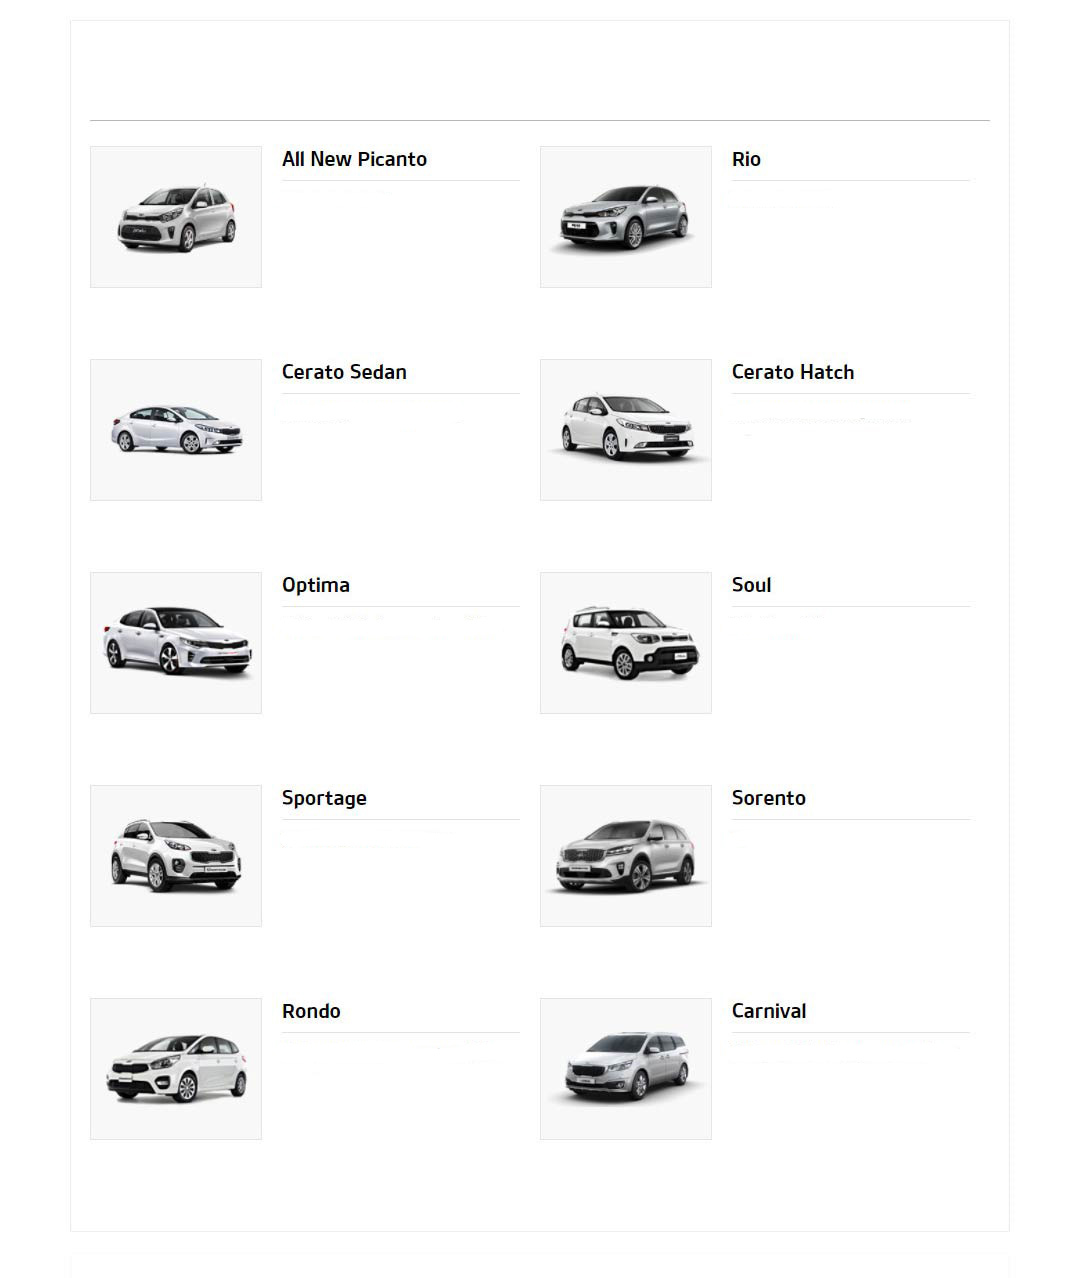 quality mcenearney offers size special kia offer specialoffers web inc name incentives picanto